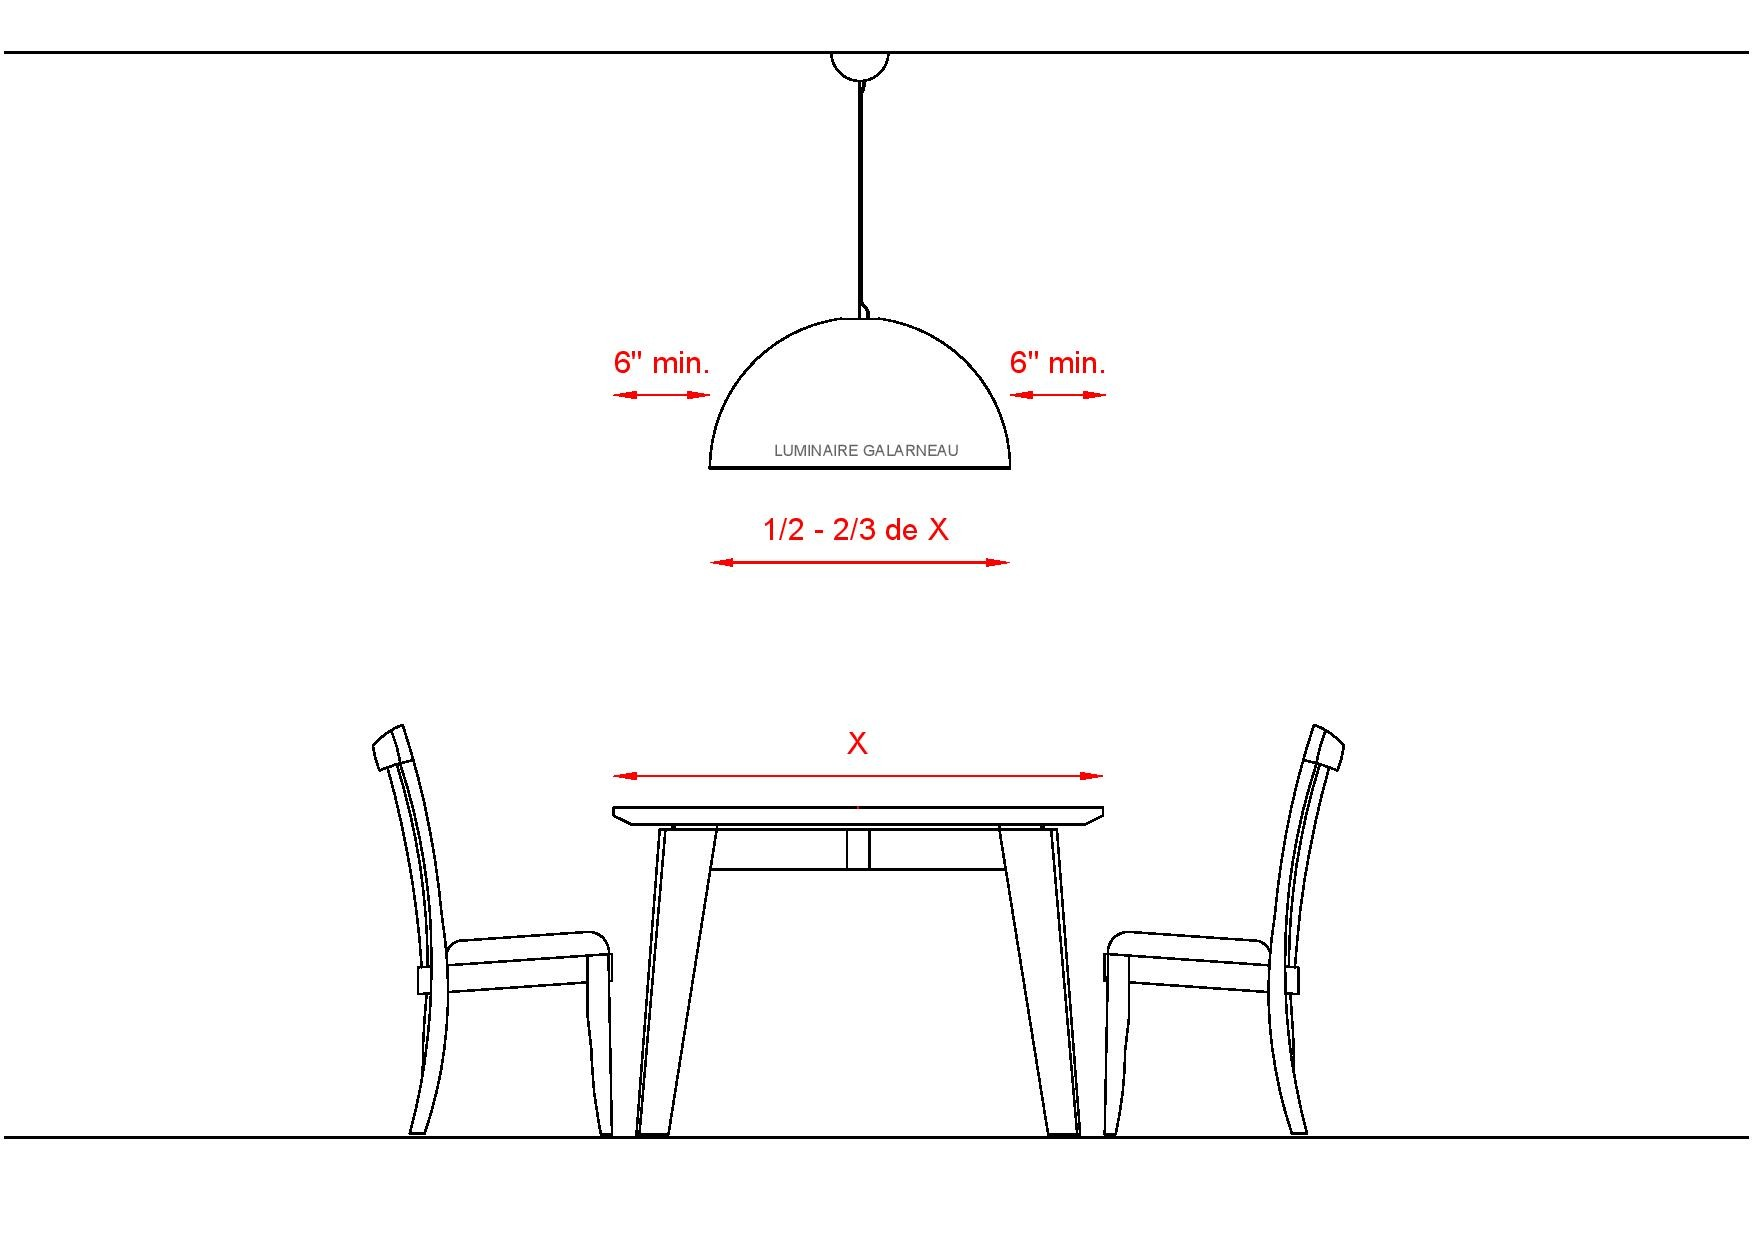 LUMINAIRE ROND Page 001